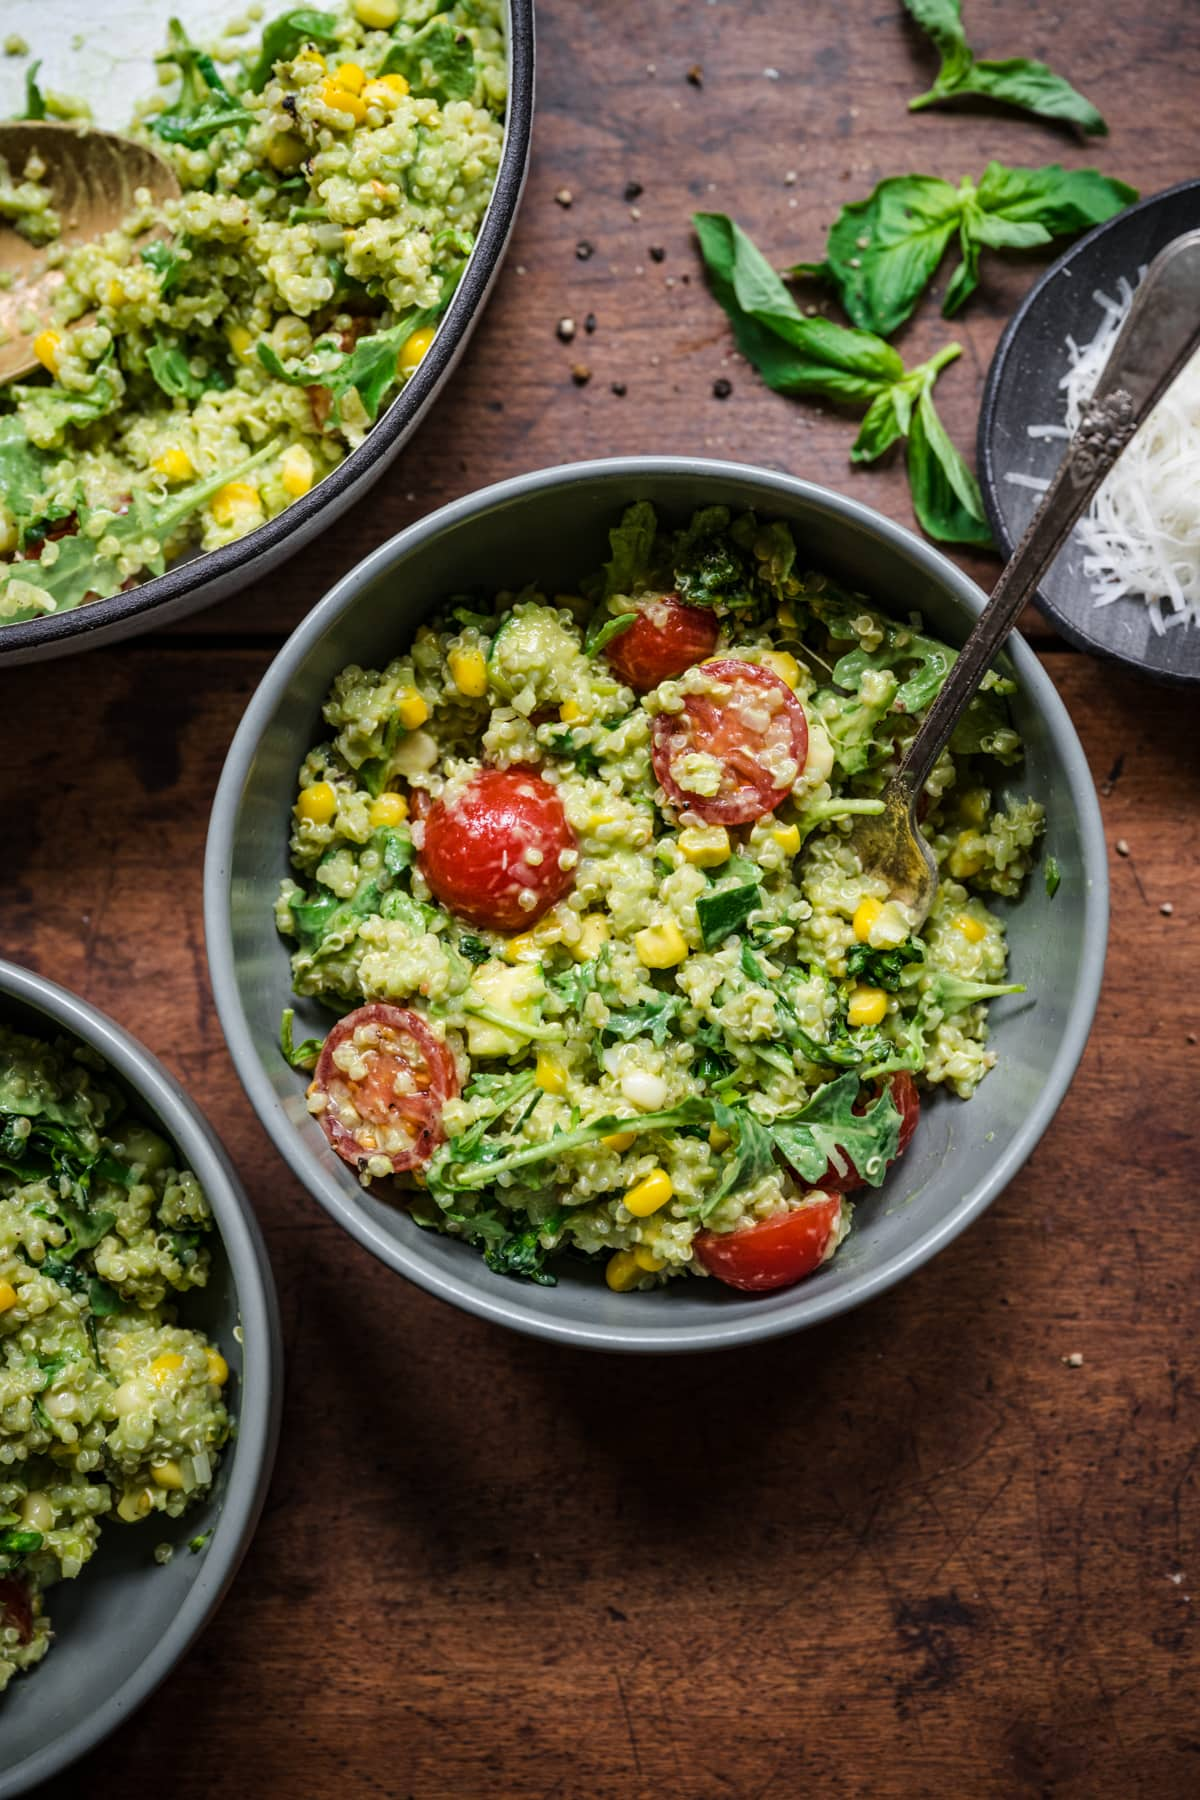 Green goddess salad in bowl. Full of quinoa, corn, and cherry tomatoes.